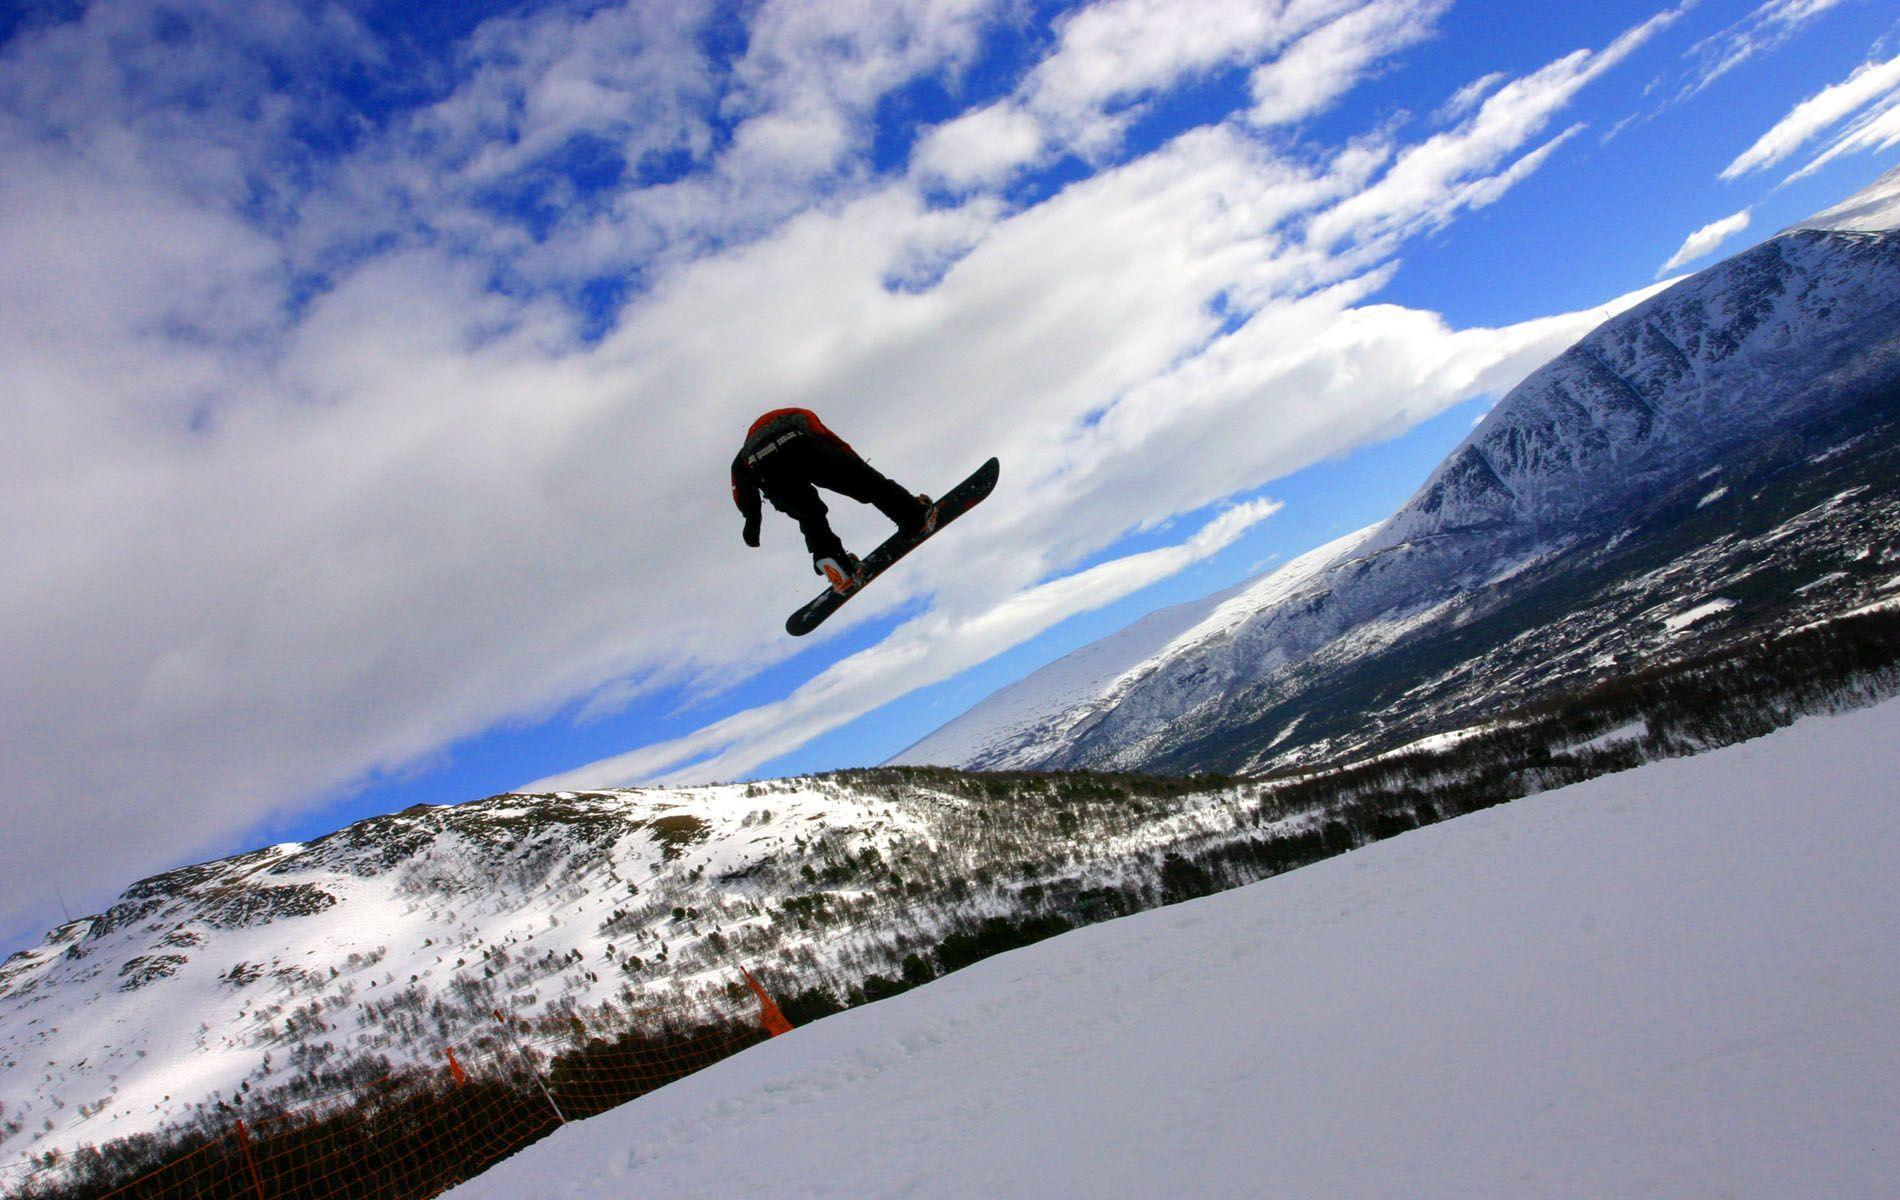 snowboard outdoor wallpaper desktop - photo #43